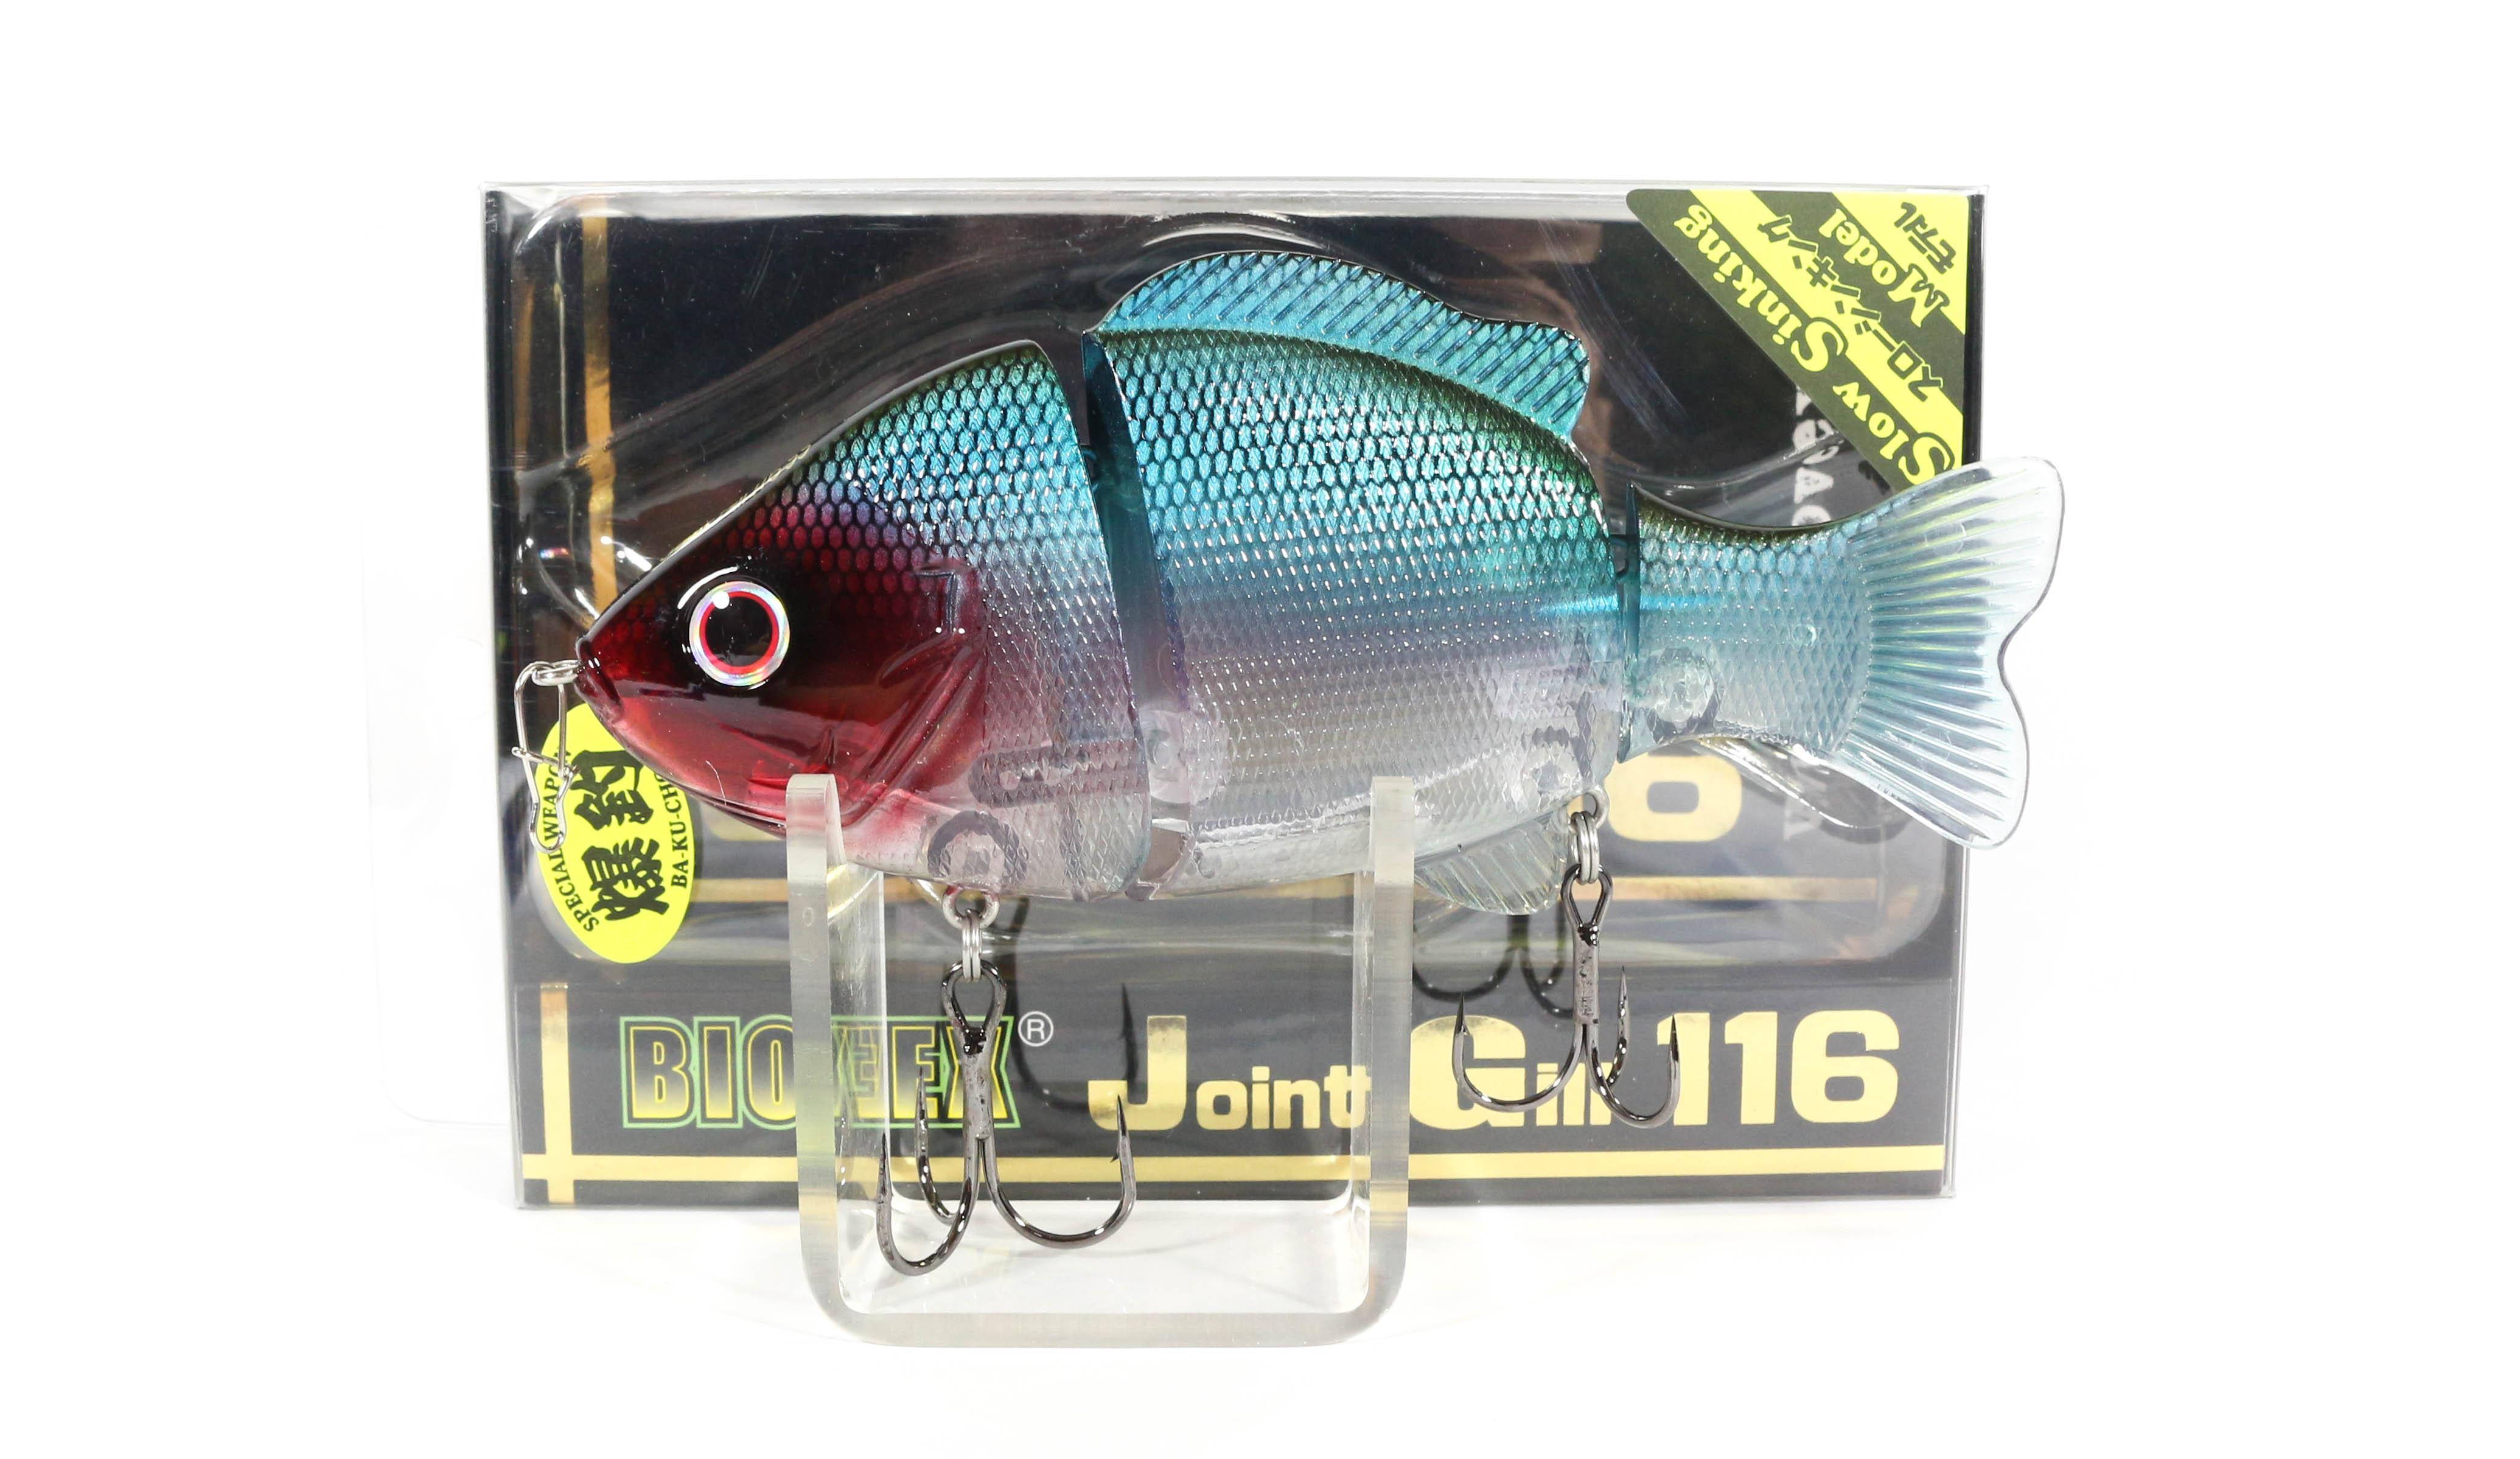 Biovex Joint Gill 116SS Flat Side Slow Sinking Lure 79 (1464)